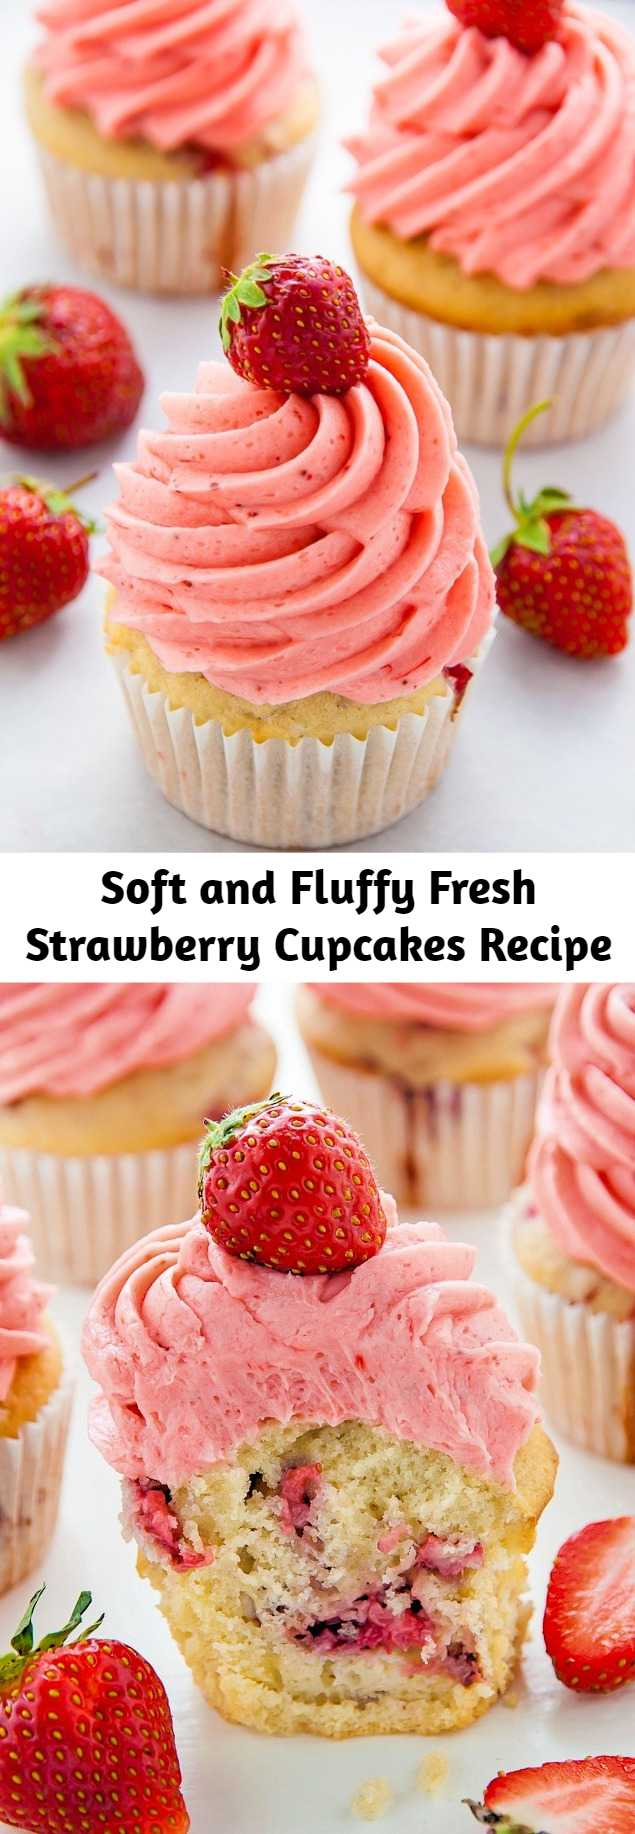 Supremely moist strawberry vanilla cupcakes are topped with fresh strawberry buttercream. These fluffy vanilla cupcakes are bursting with juicy pockets of strawberry and the hot pink frosting is so pretty and delicious. These are the perfect Summer cupcakes!